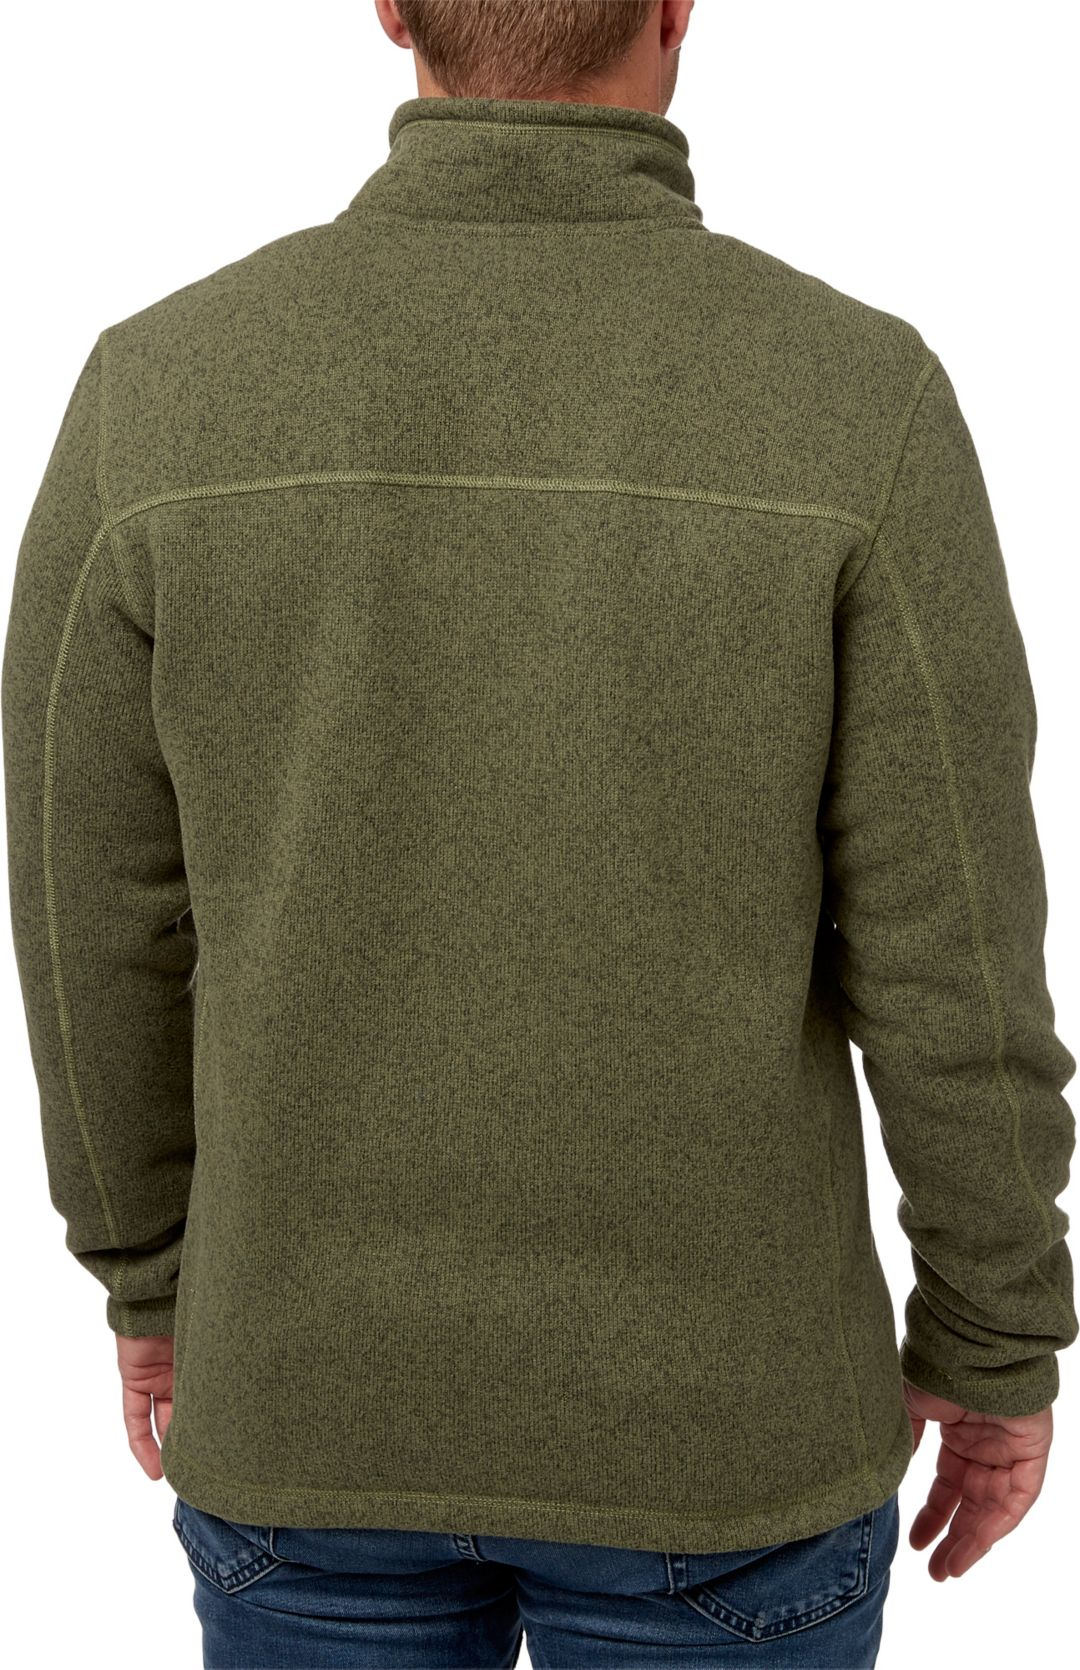 c7440beaa The North Face Men's Gordon Lyons Quarter Zip Fleece Pullover